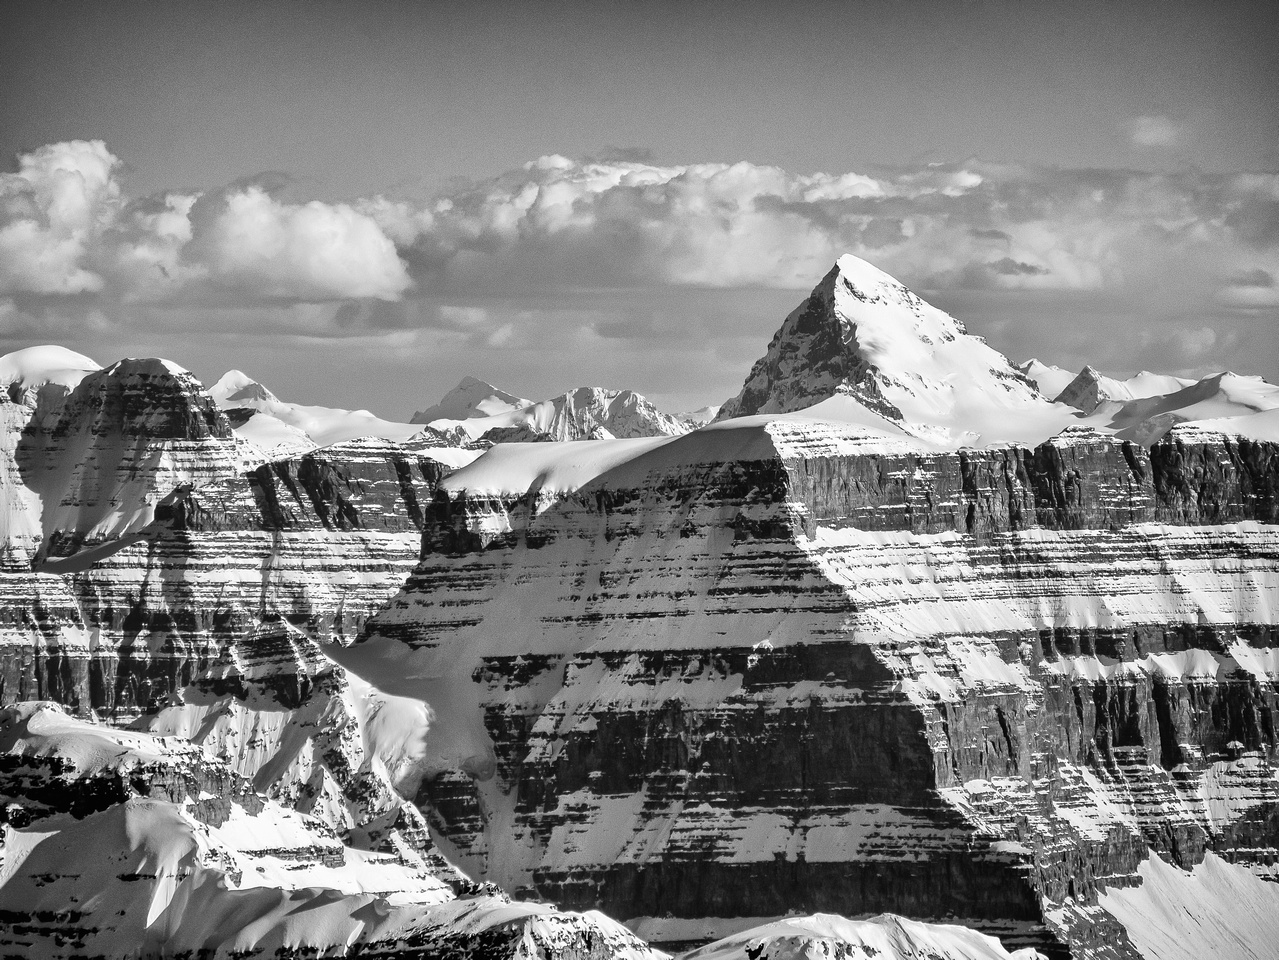 Mount Forbes is a very gorgeous peak and also very high - the highest summit in Banff National Park at 11,852'.